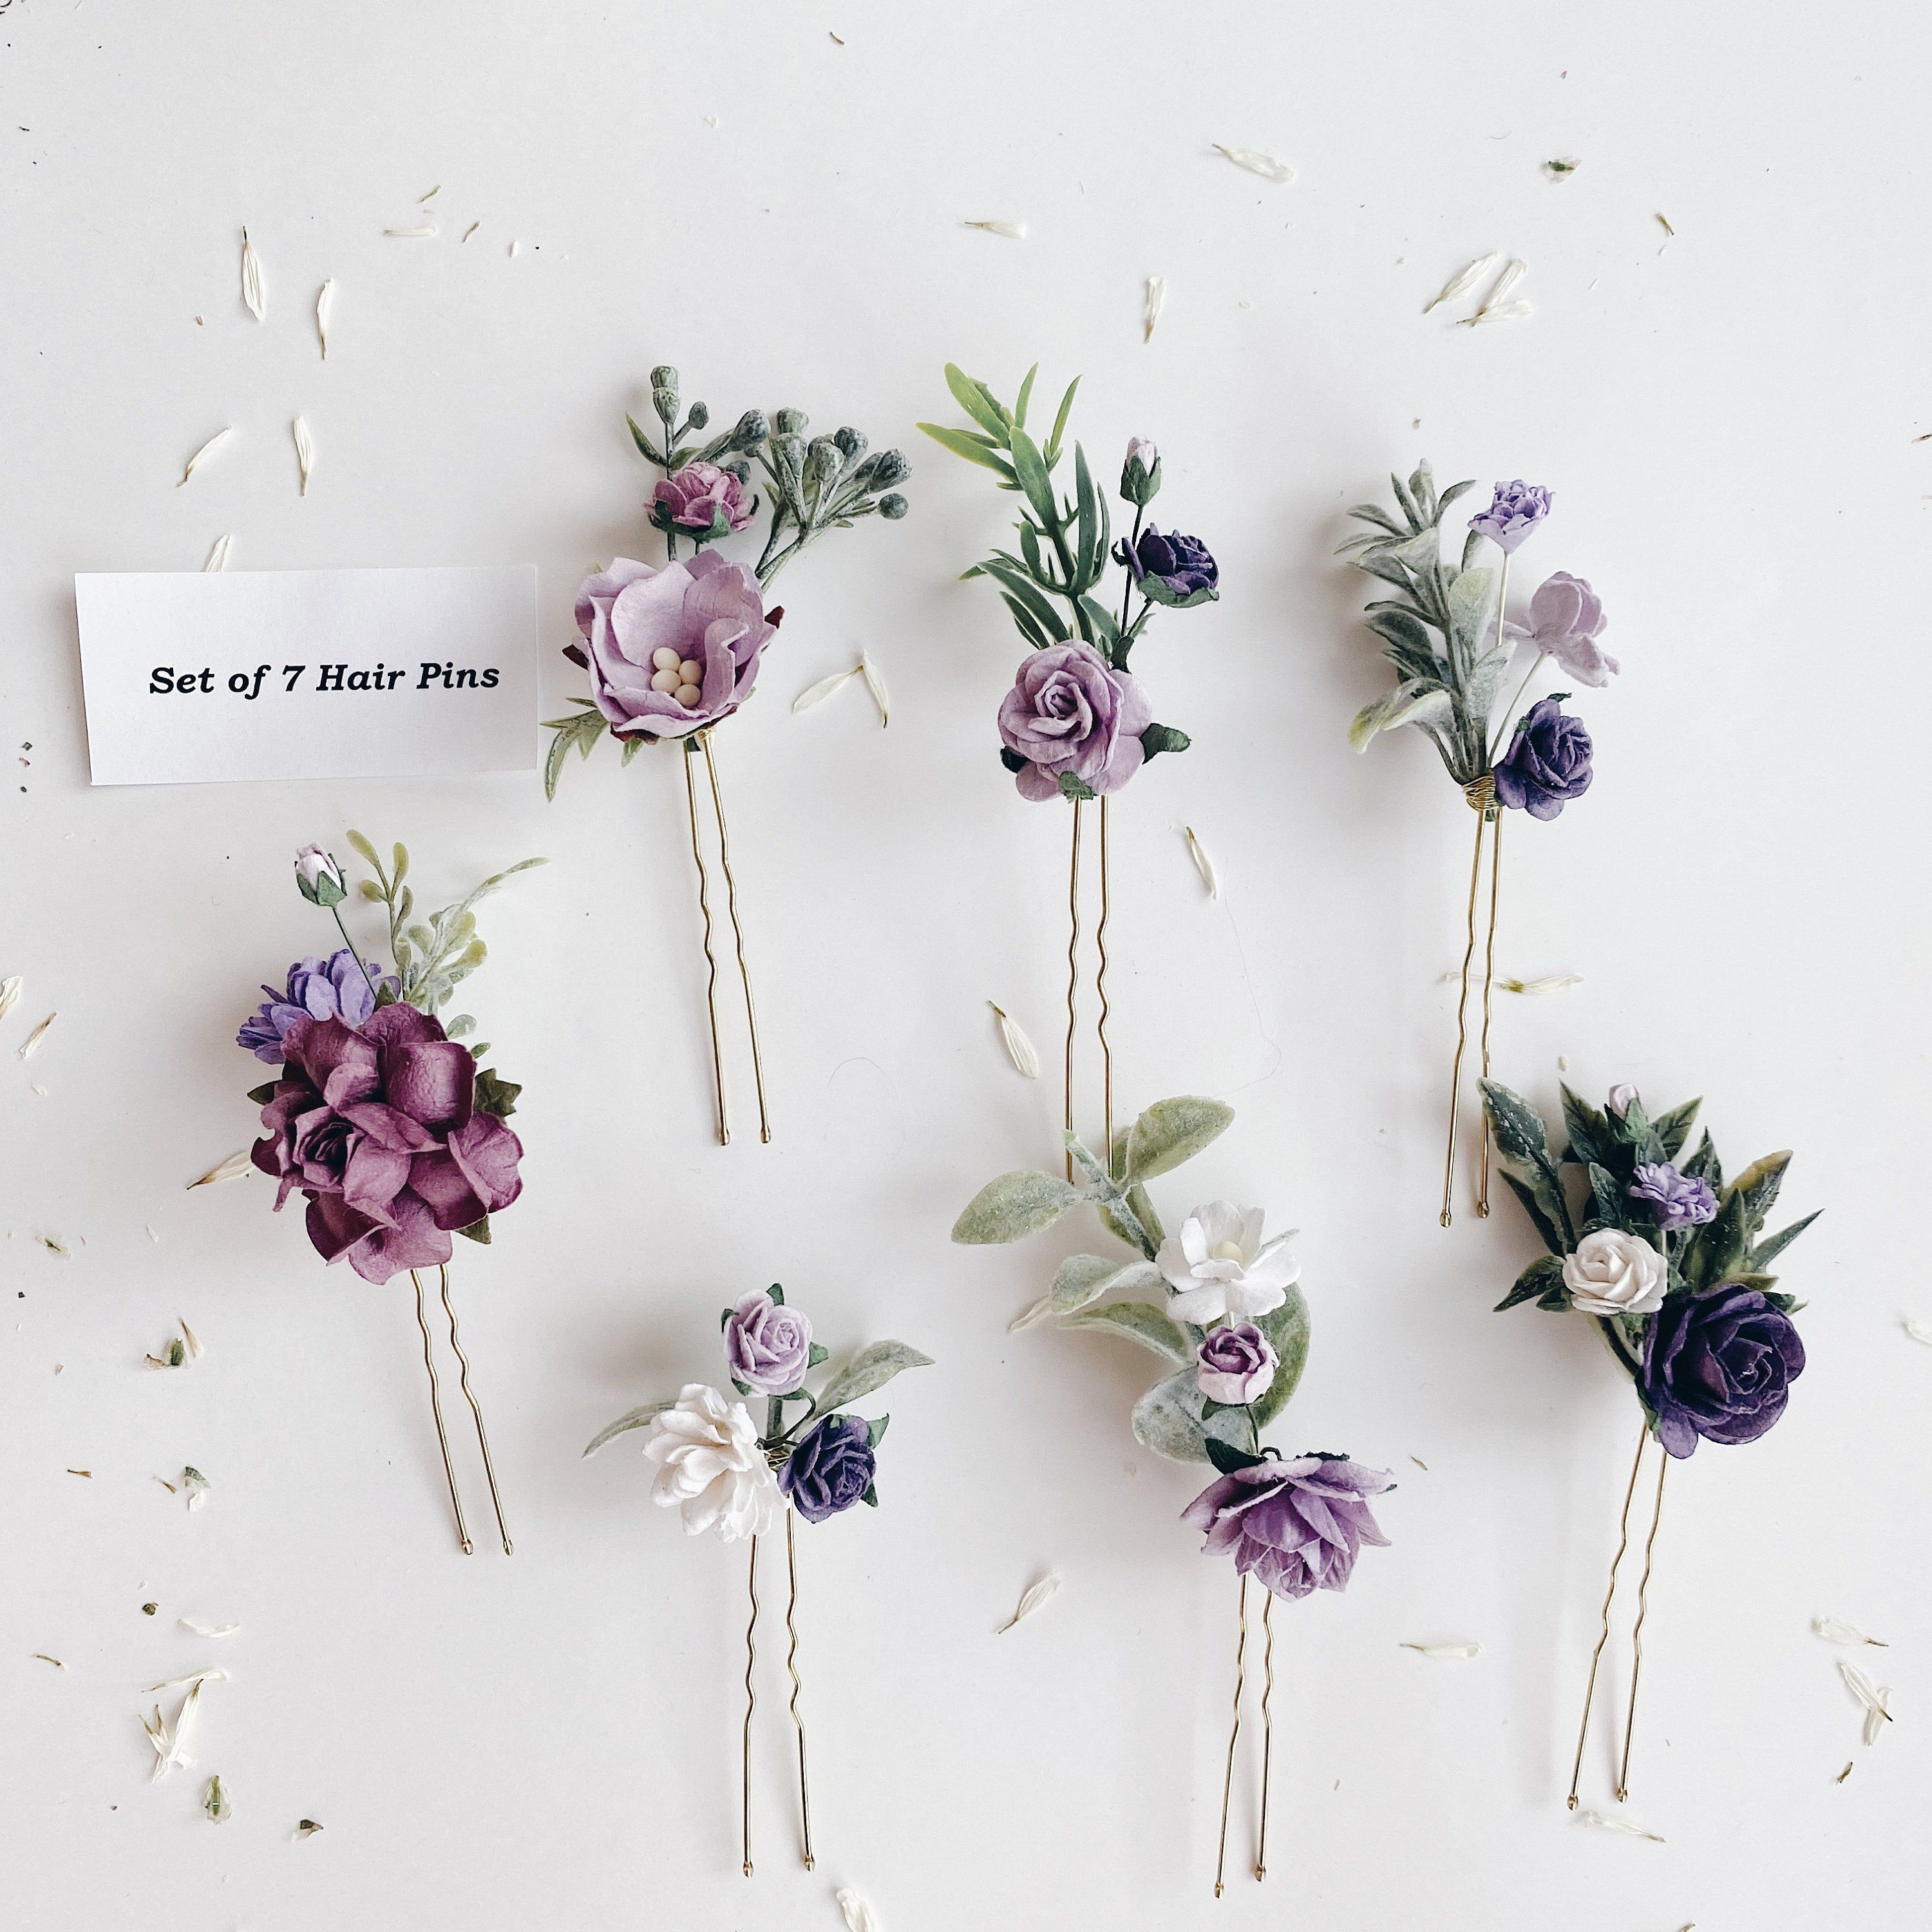 Flower Hair Pins Lilac Hair Flowers Set Of Hair Pins Bridal Hair Piece Purple Purple Hair Pins Hair Comb Wedding Lavender Hair Piece In 2020 Flower Hair Pin Floral Hair Pins